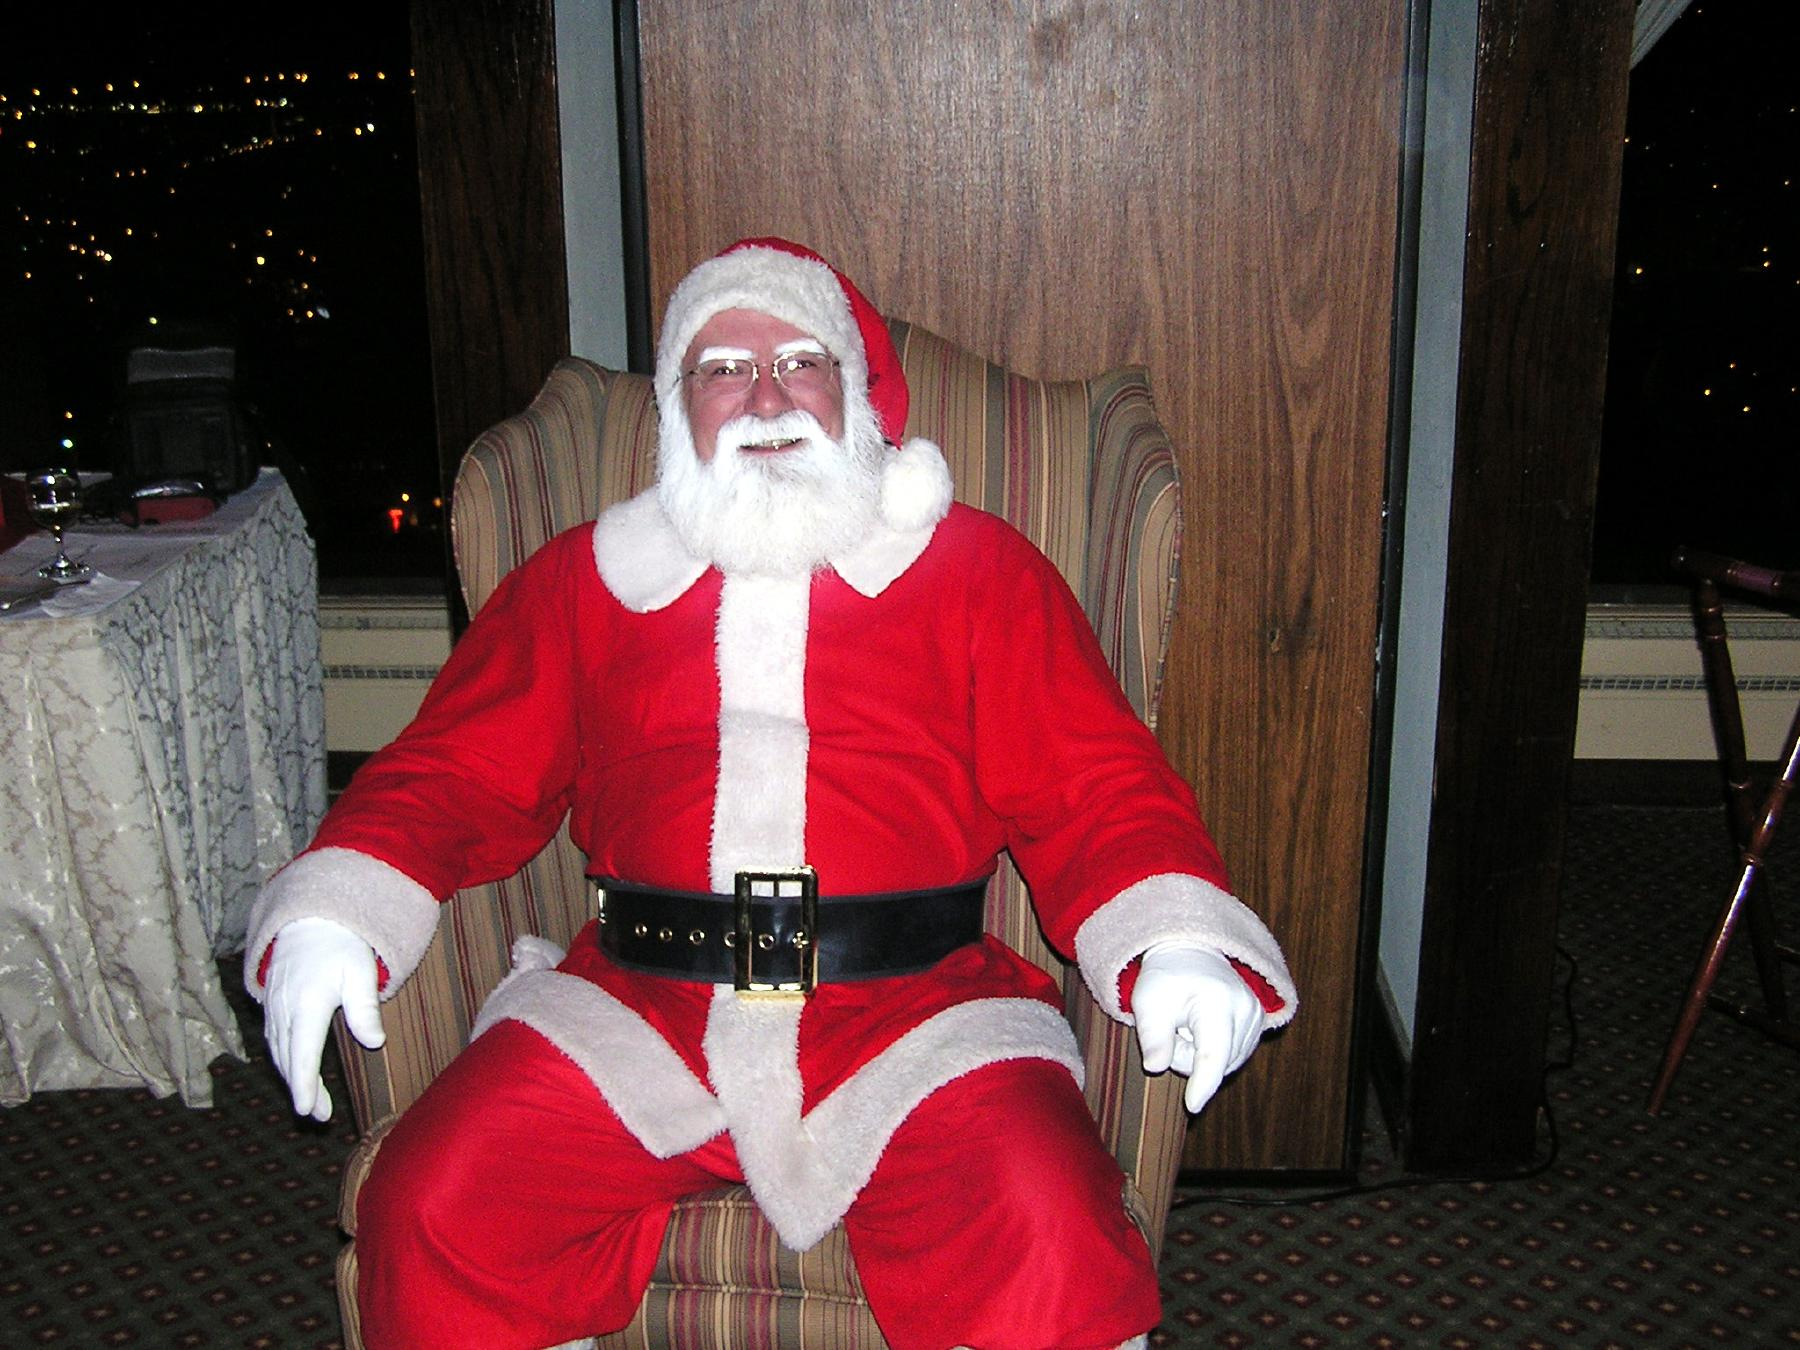 http://upload.wikimedia.org/wikipedia/commons/2/28/Santa_Claus-SL.jpg